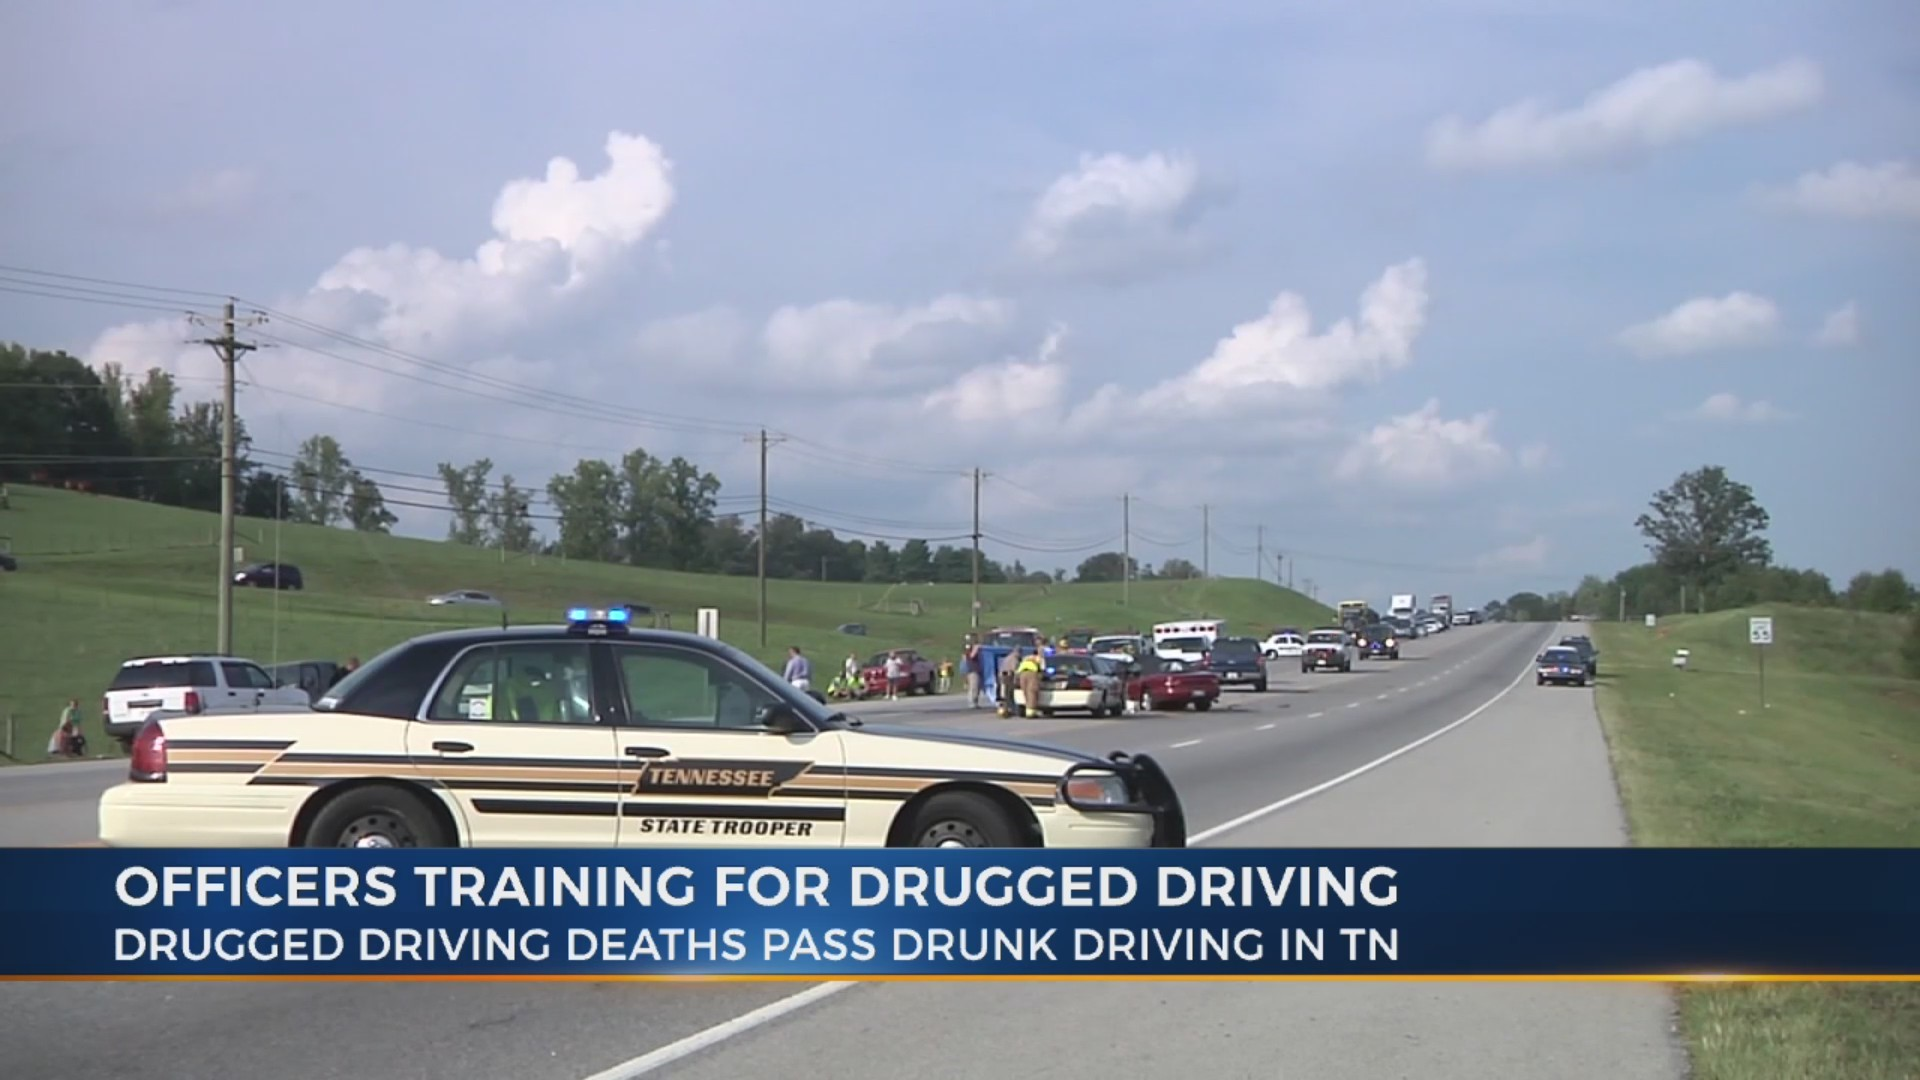 Officers train to recognize drugged driving